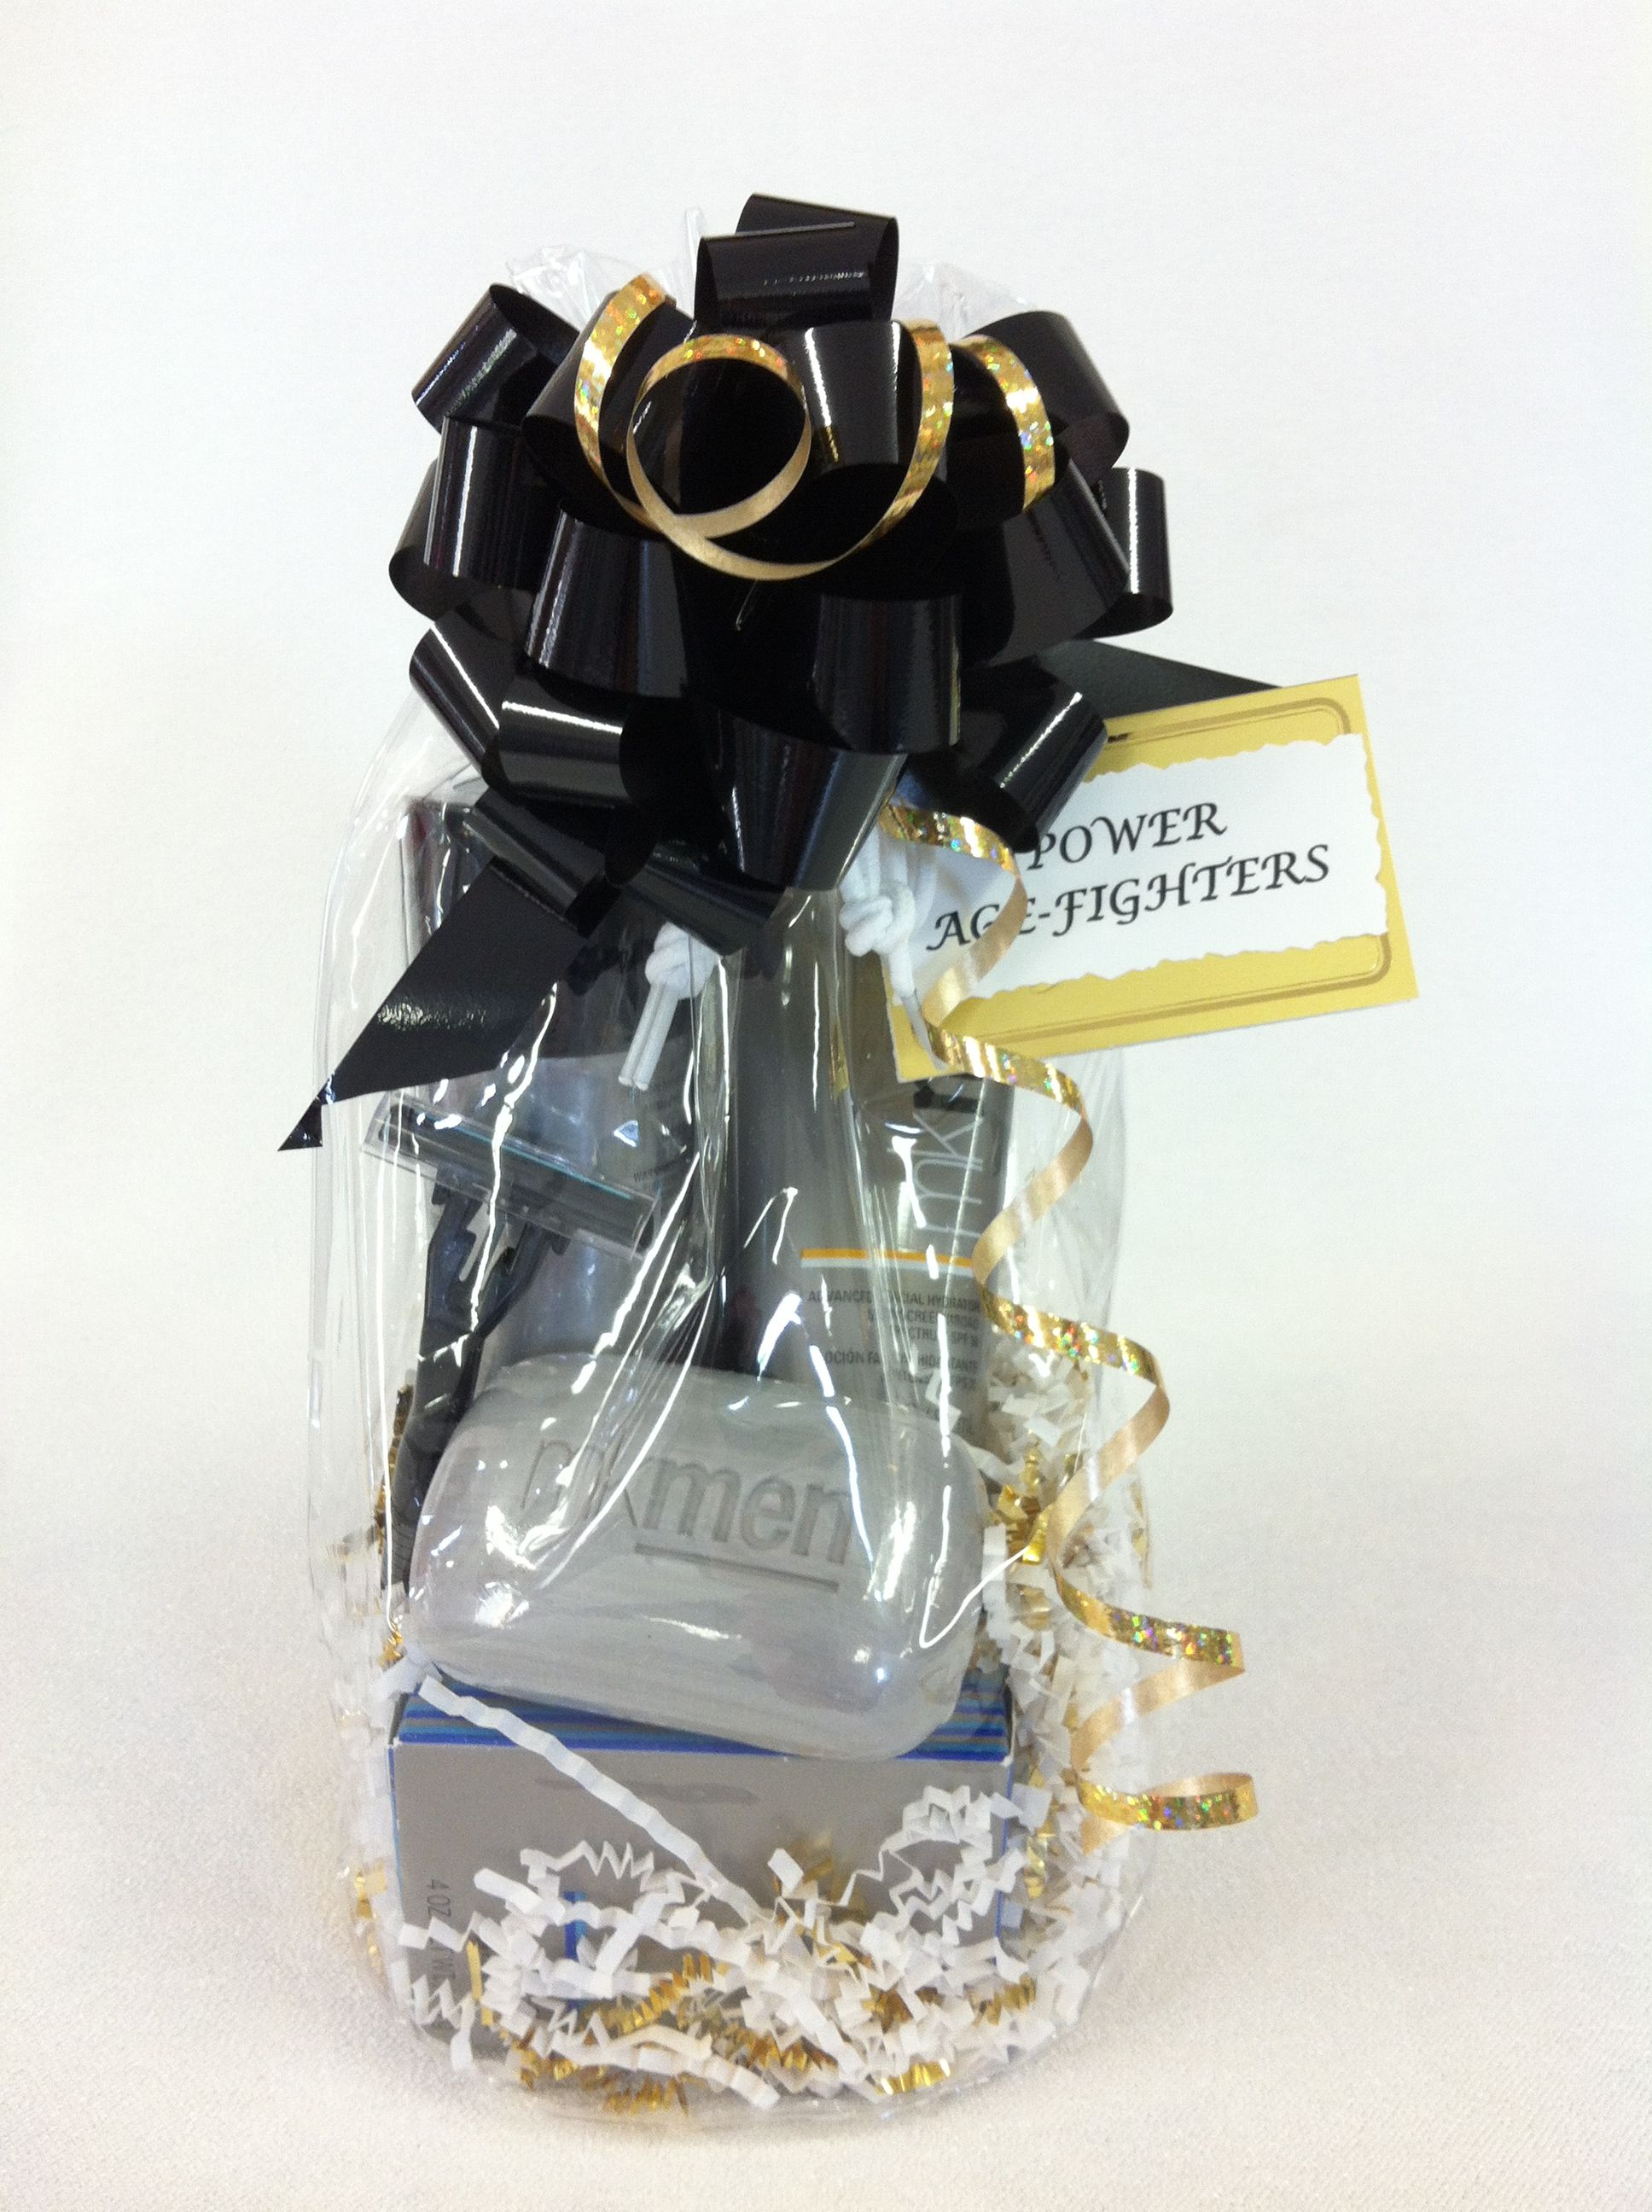 2013 gift idea power agefighters mary kay packaging